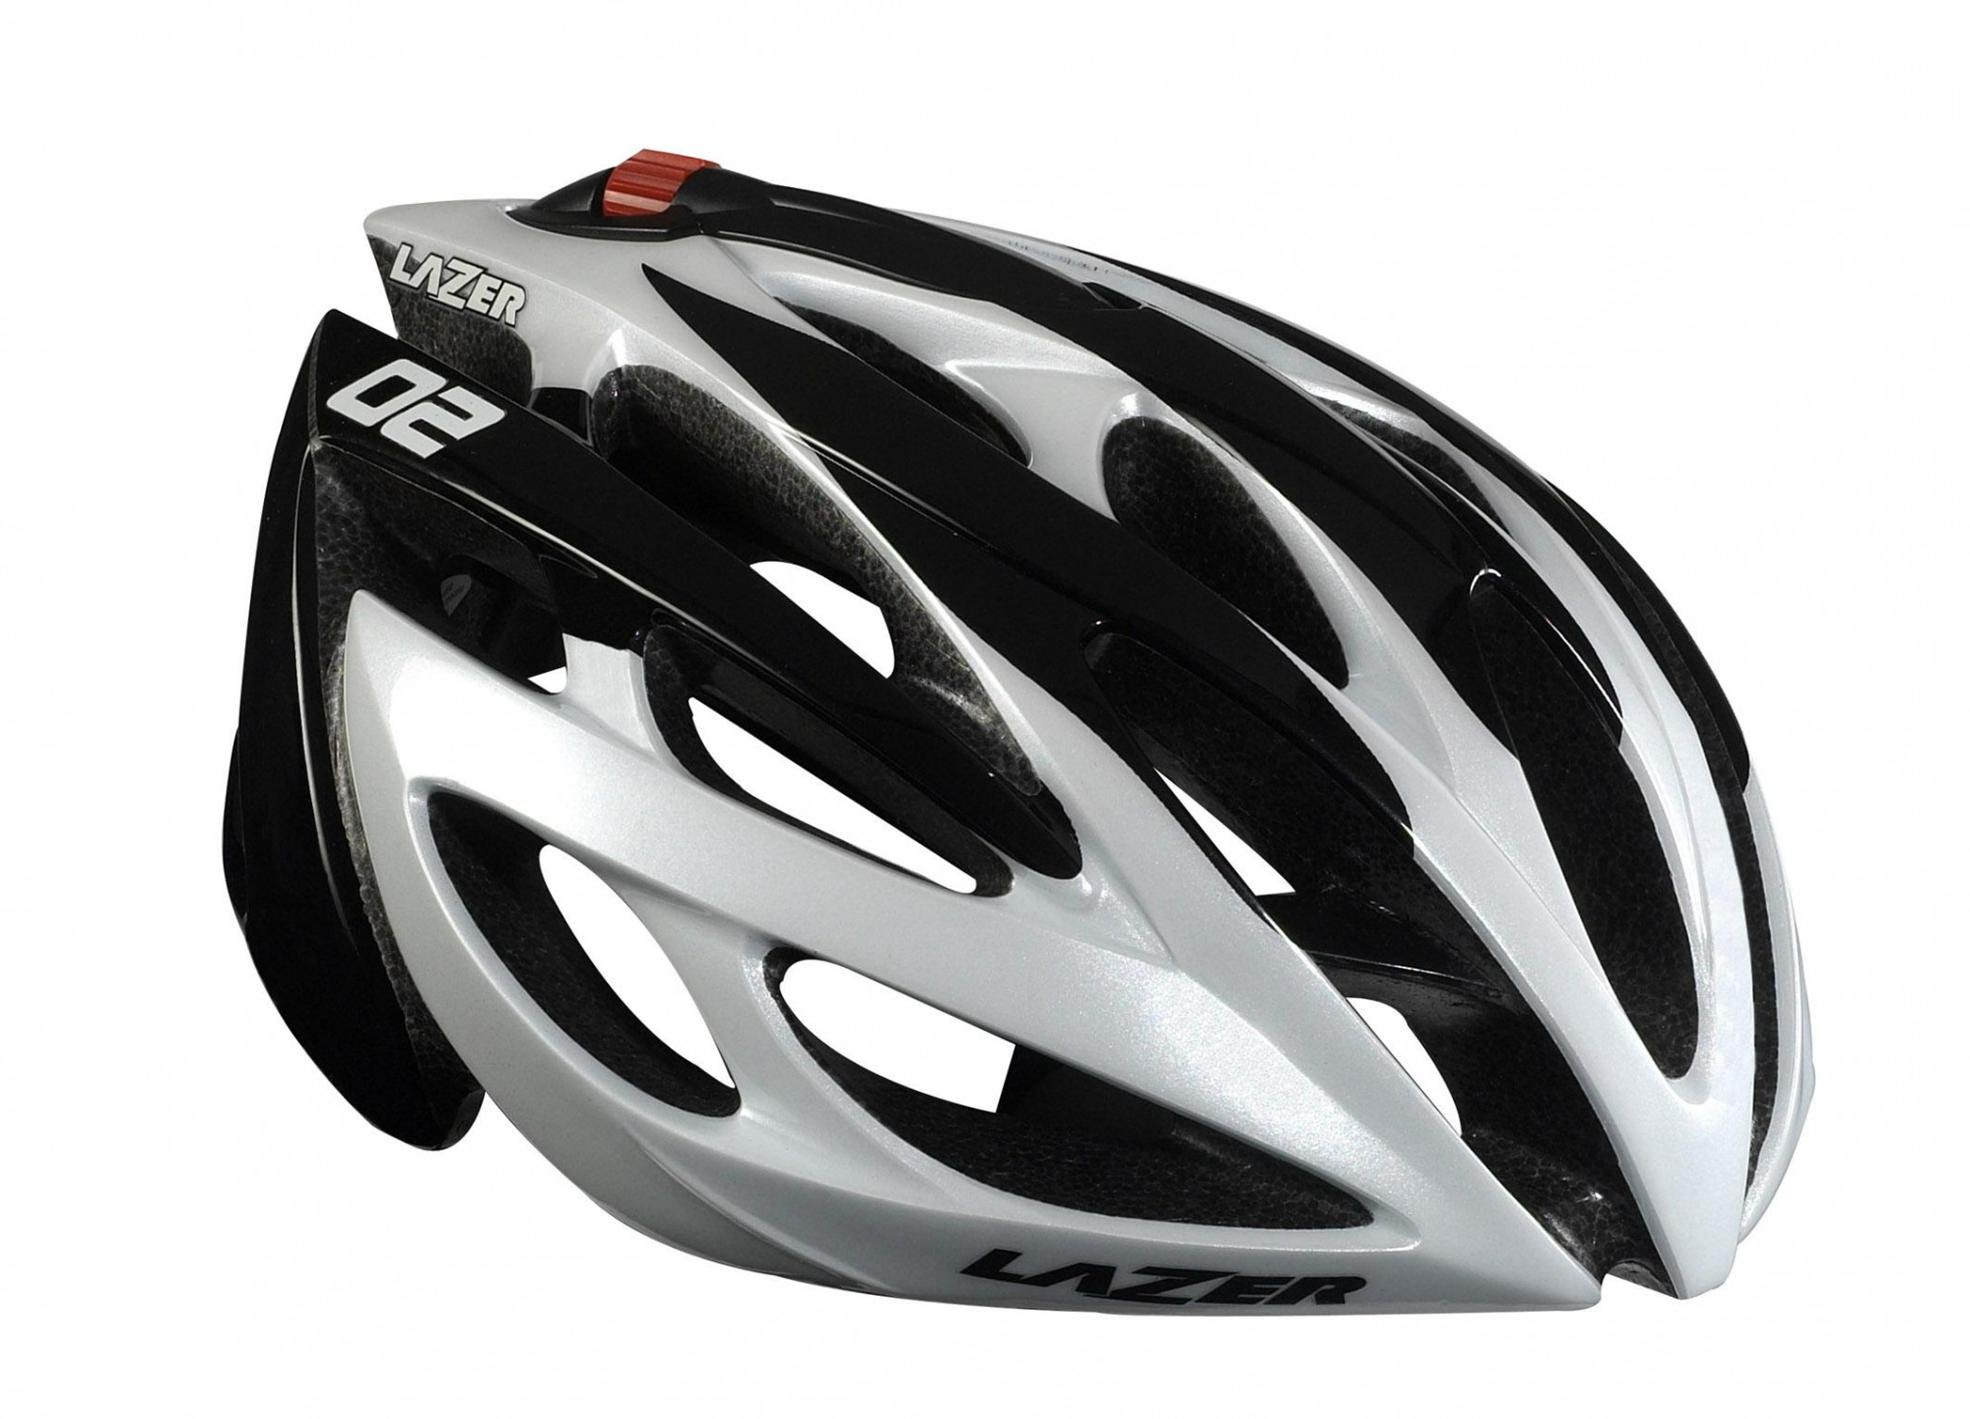 lazer o2 bicycle helmet image